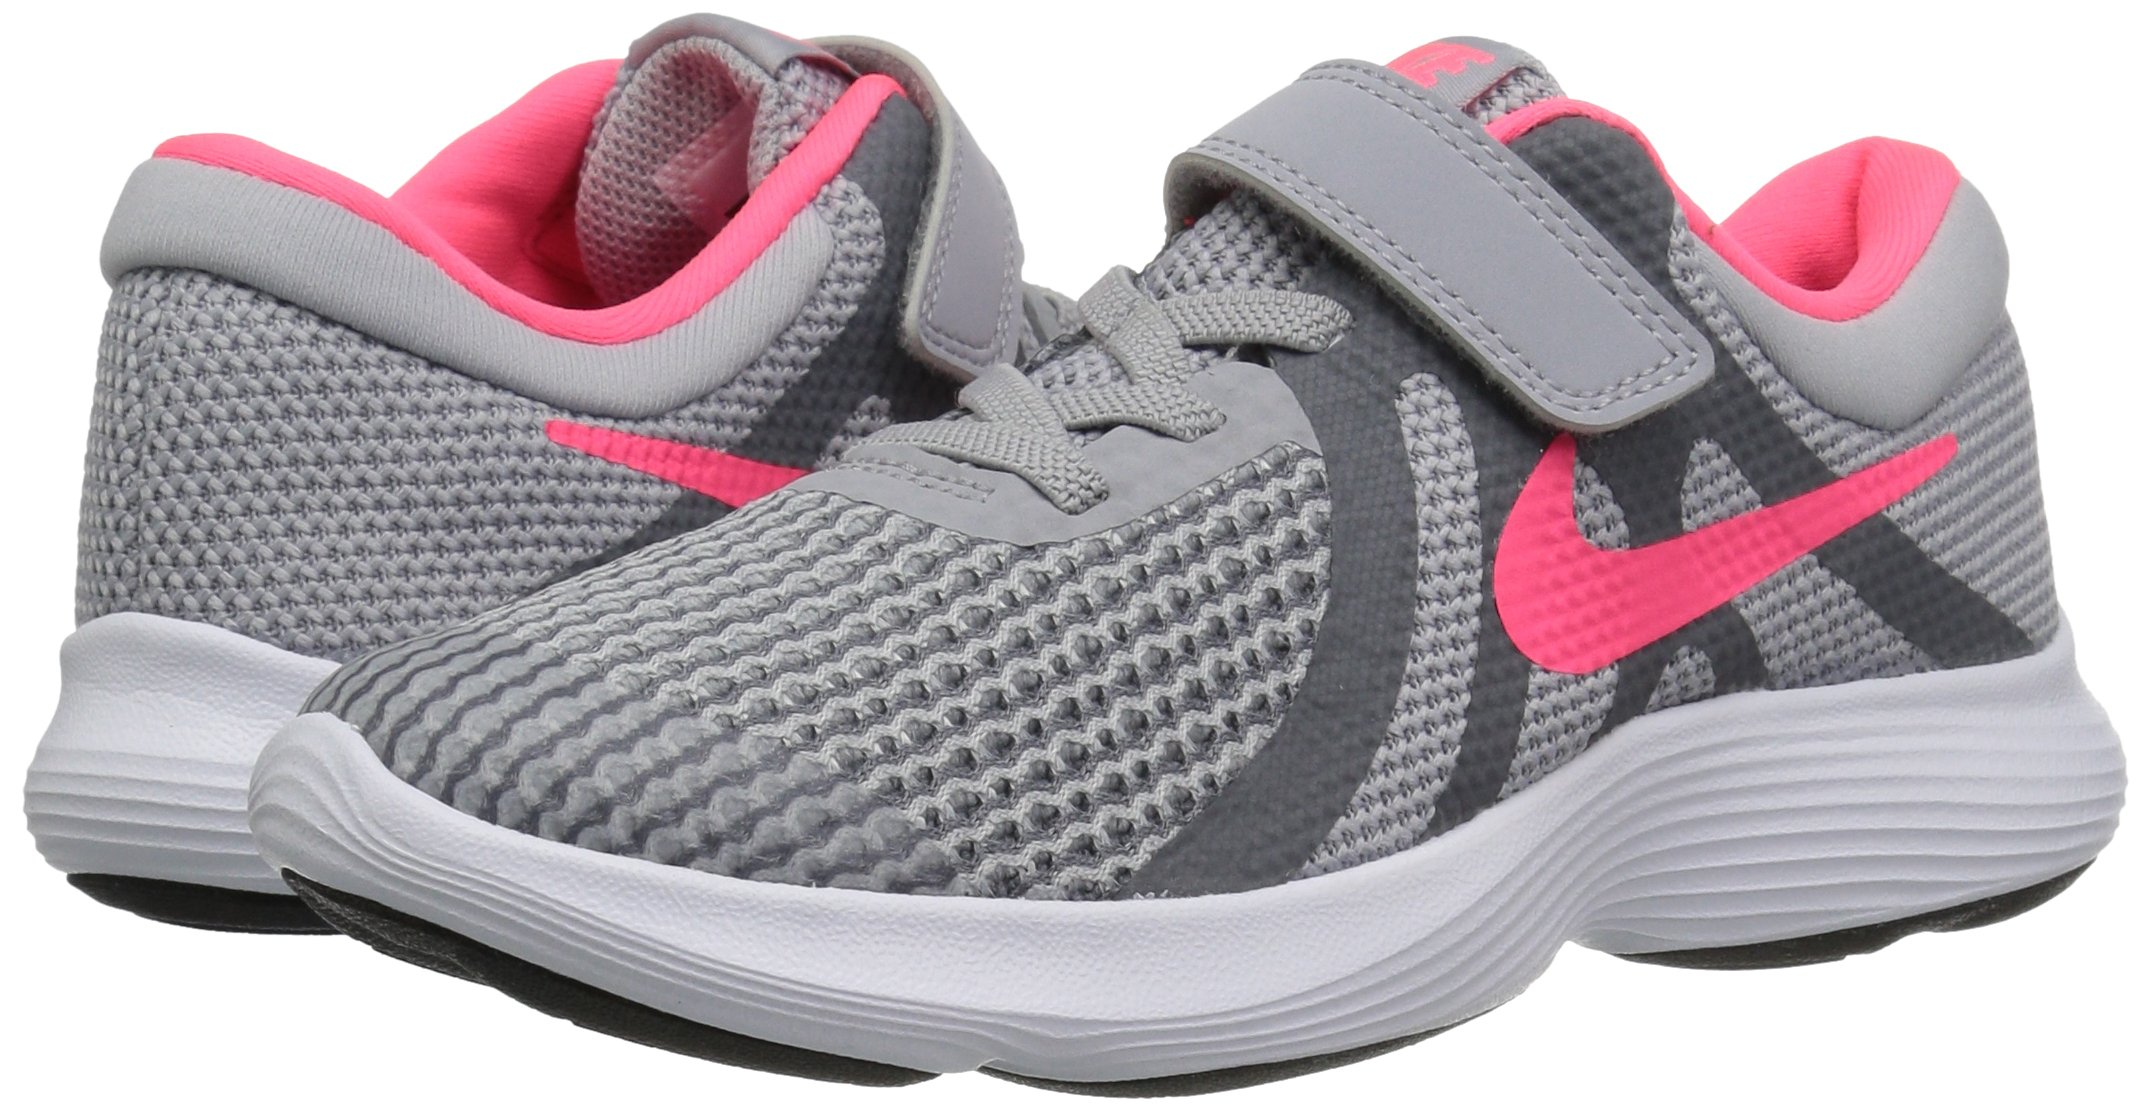 Nike Girls' Revolution 4 (PSV) Running Shoe, Wolf Racer Pink-Cool Grey-White, 3Y Child US Little Kid by Nike (Image #5)